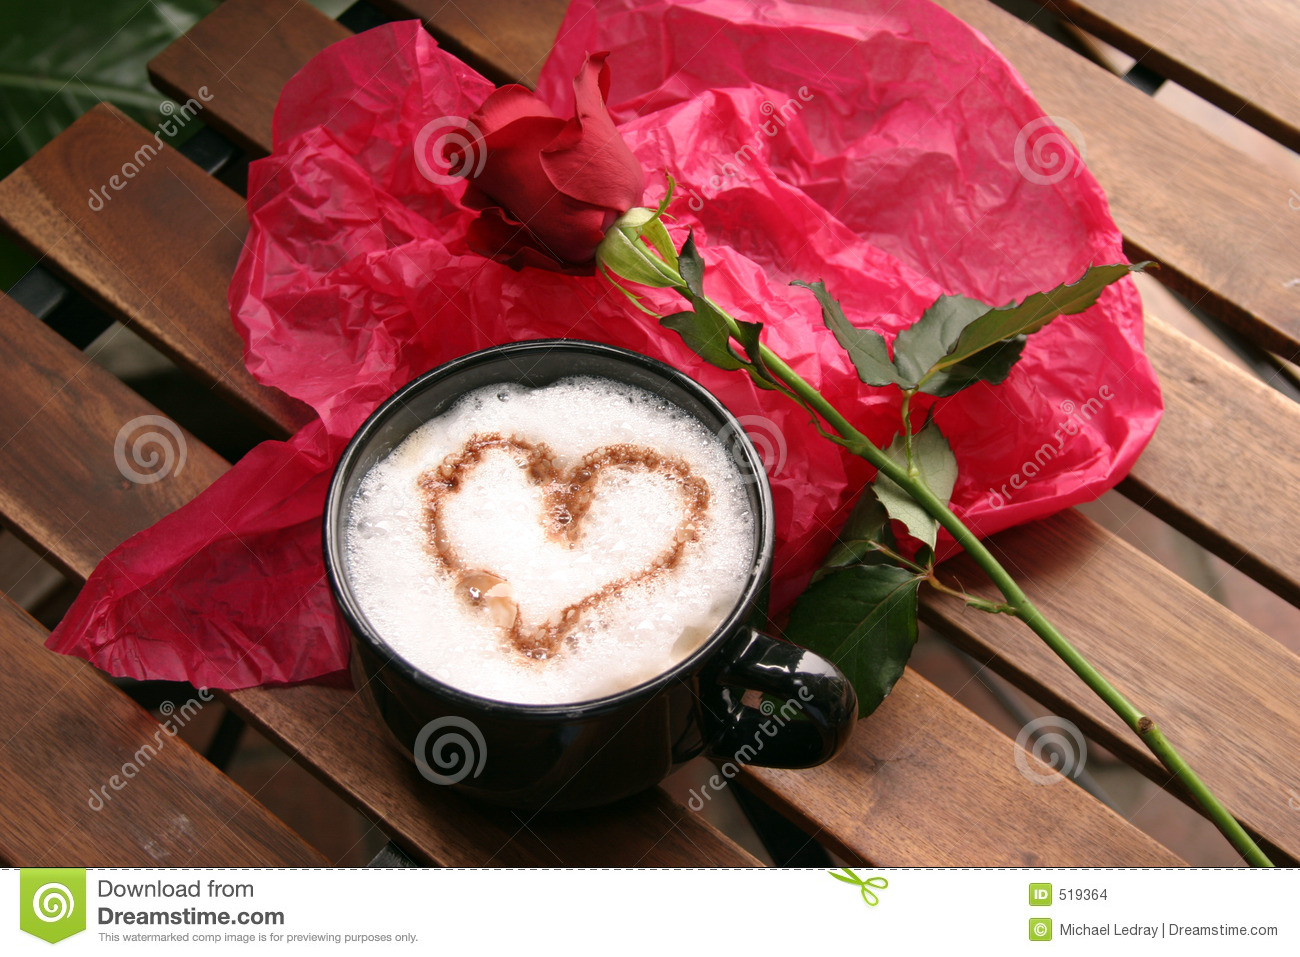 Coffee and roses stock photo. Image of foam, latte, moments - 519364